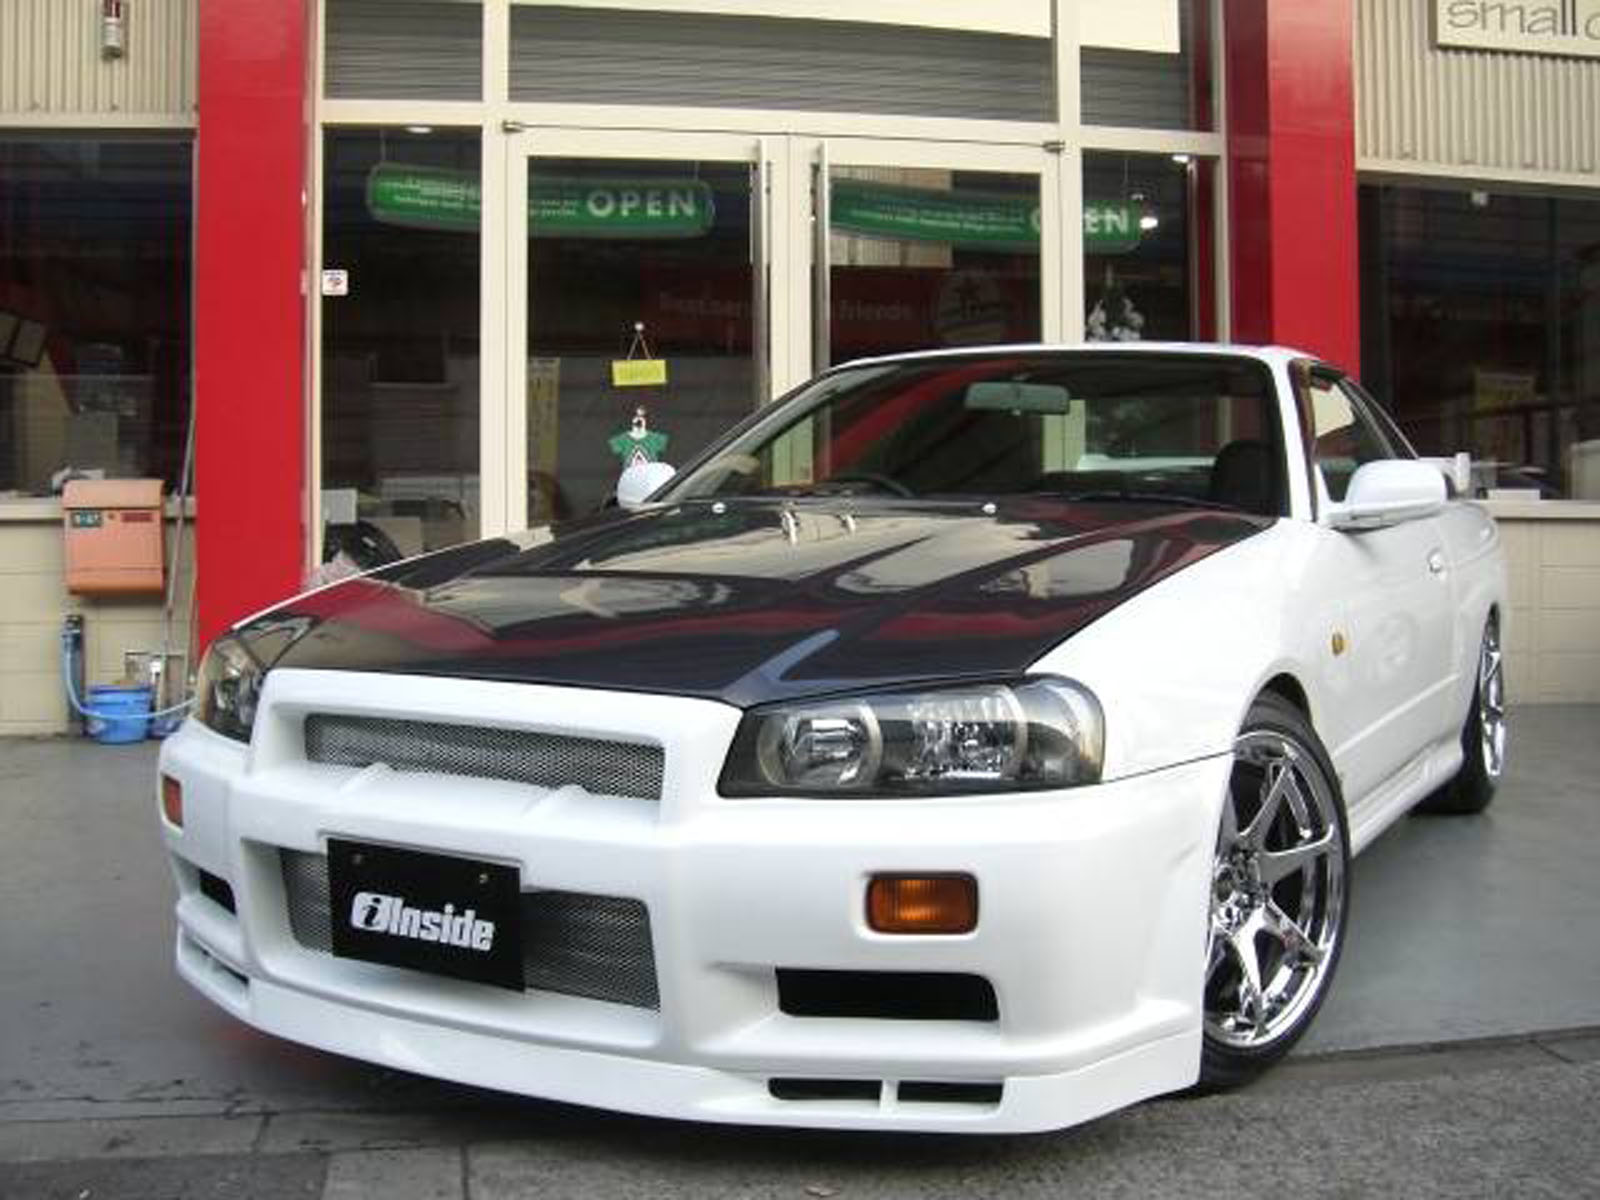 r34 nissan skyline for sale in florida autos post. Black Bedroom Furniture Sets. Home Design Ideas